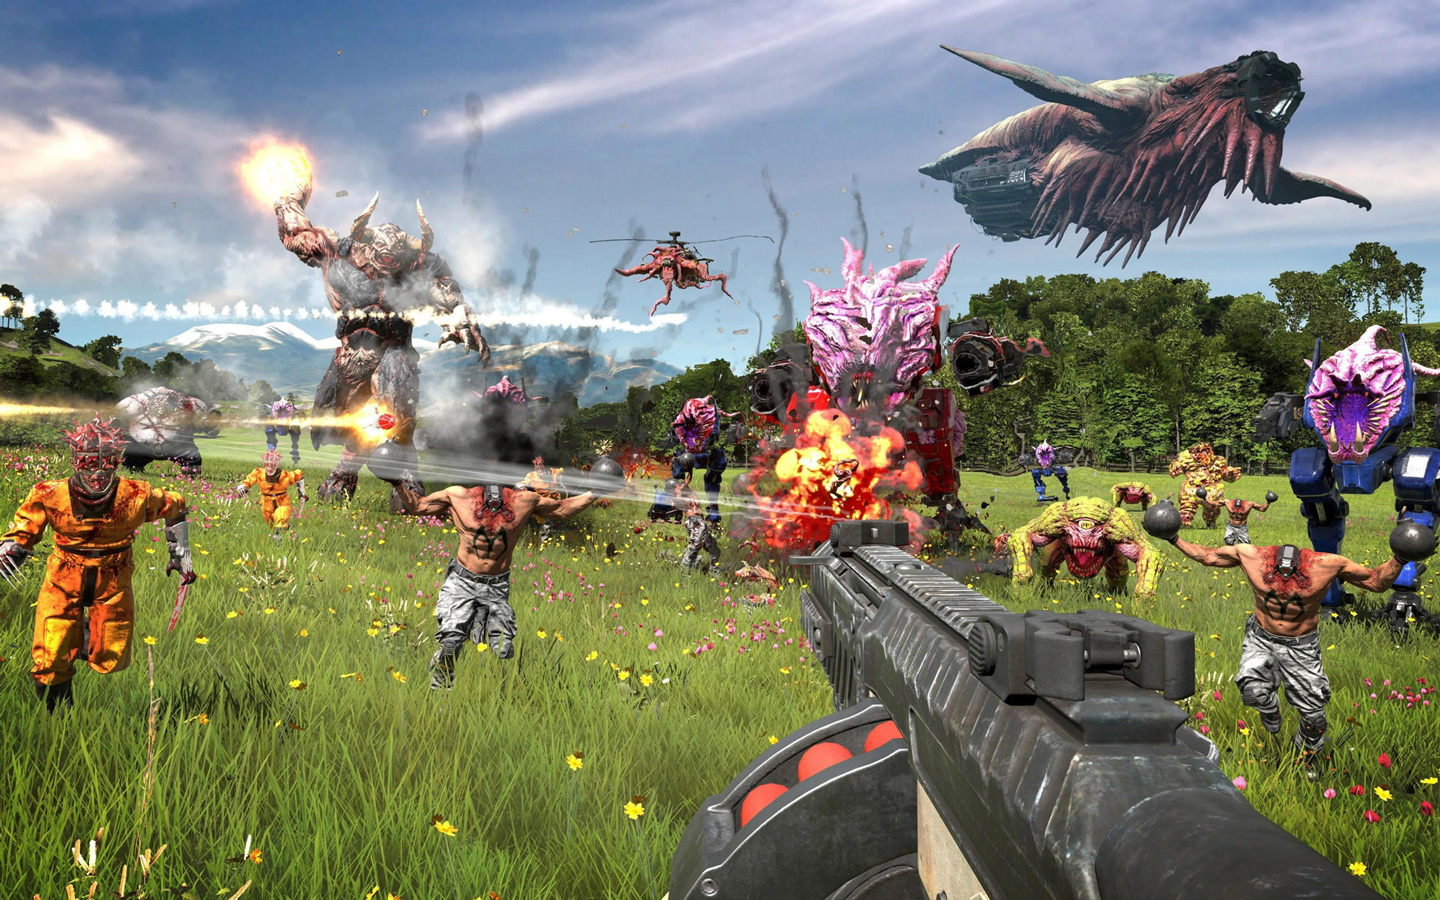 Free Serious Sam 4: Planet Badass Wallpaper in 1440x900